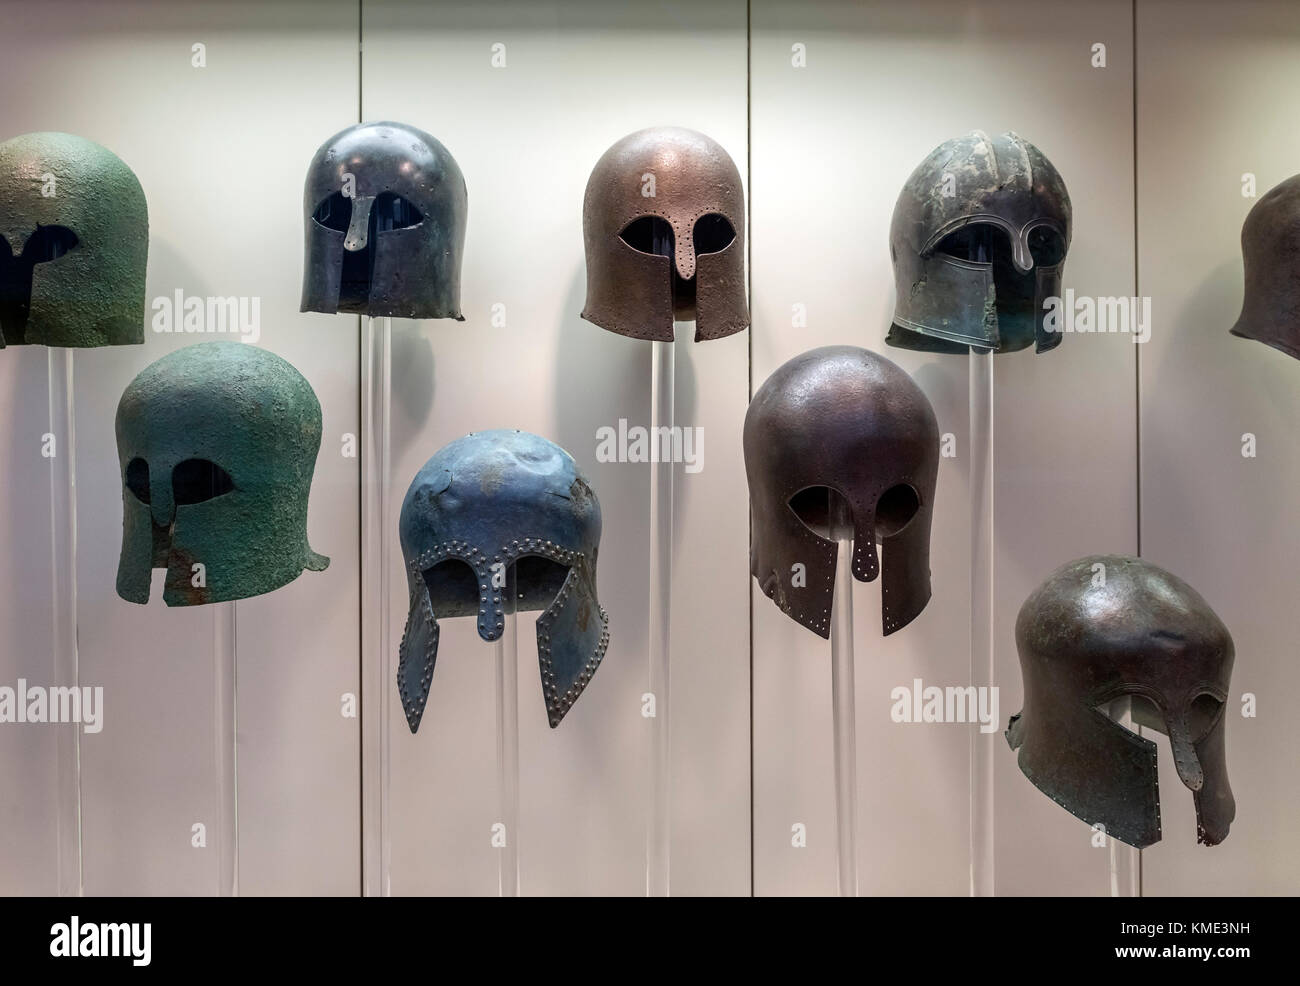 Display of bronze Corinthian style helmets dating from around the 6th to 8th century BC, Archaeological Museum of - Stock Image